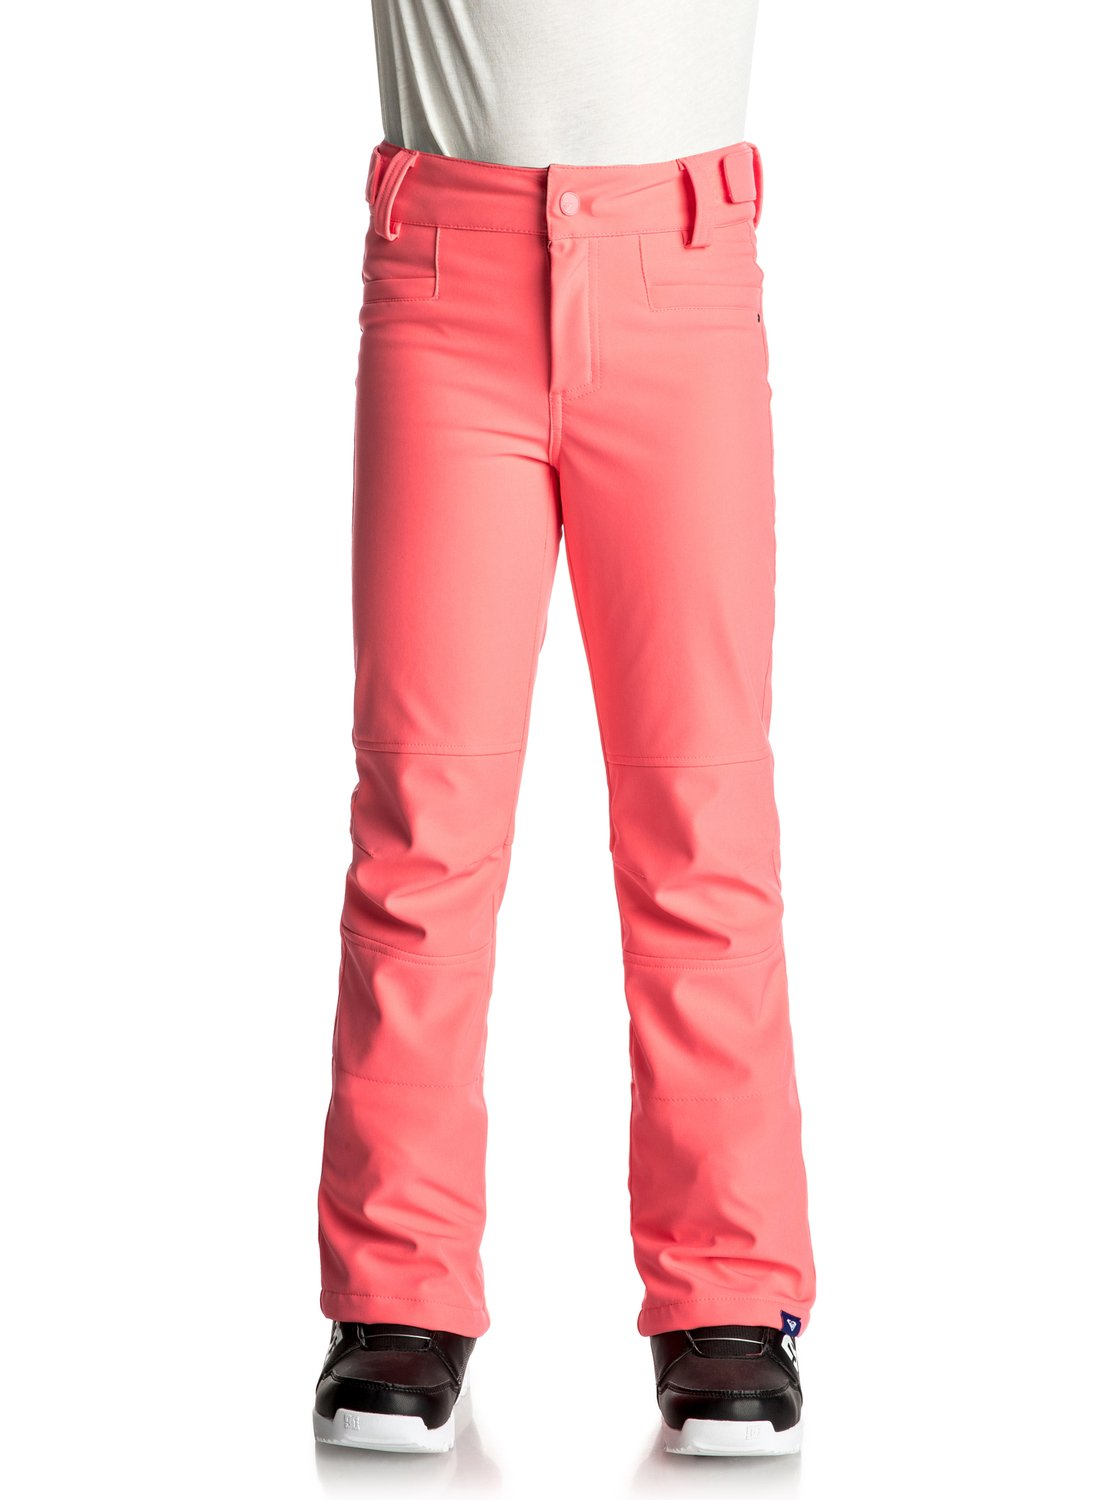 Creek - Pantalon de snow pour Fille - Roxy